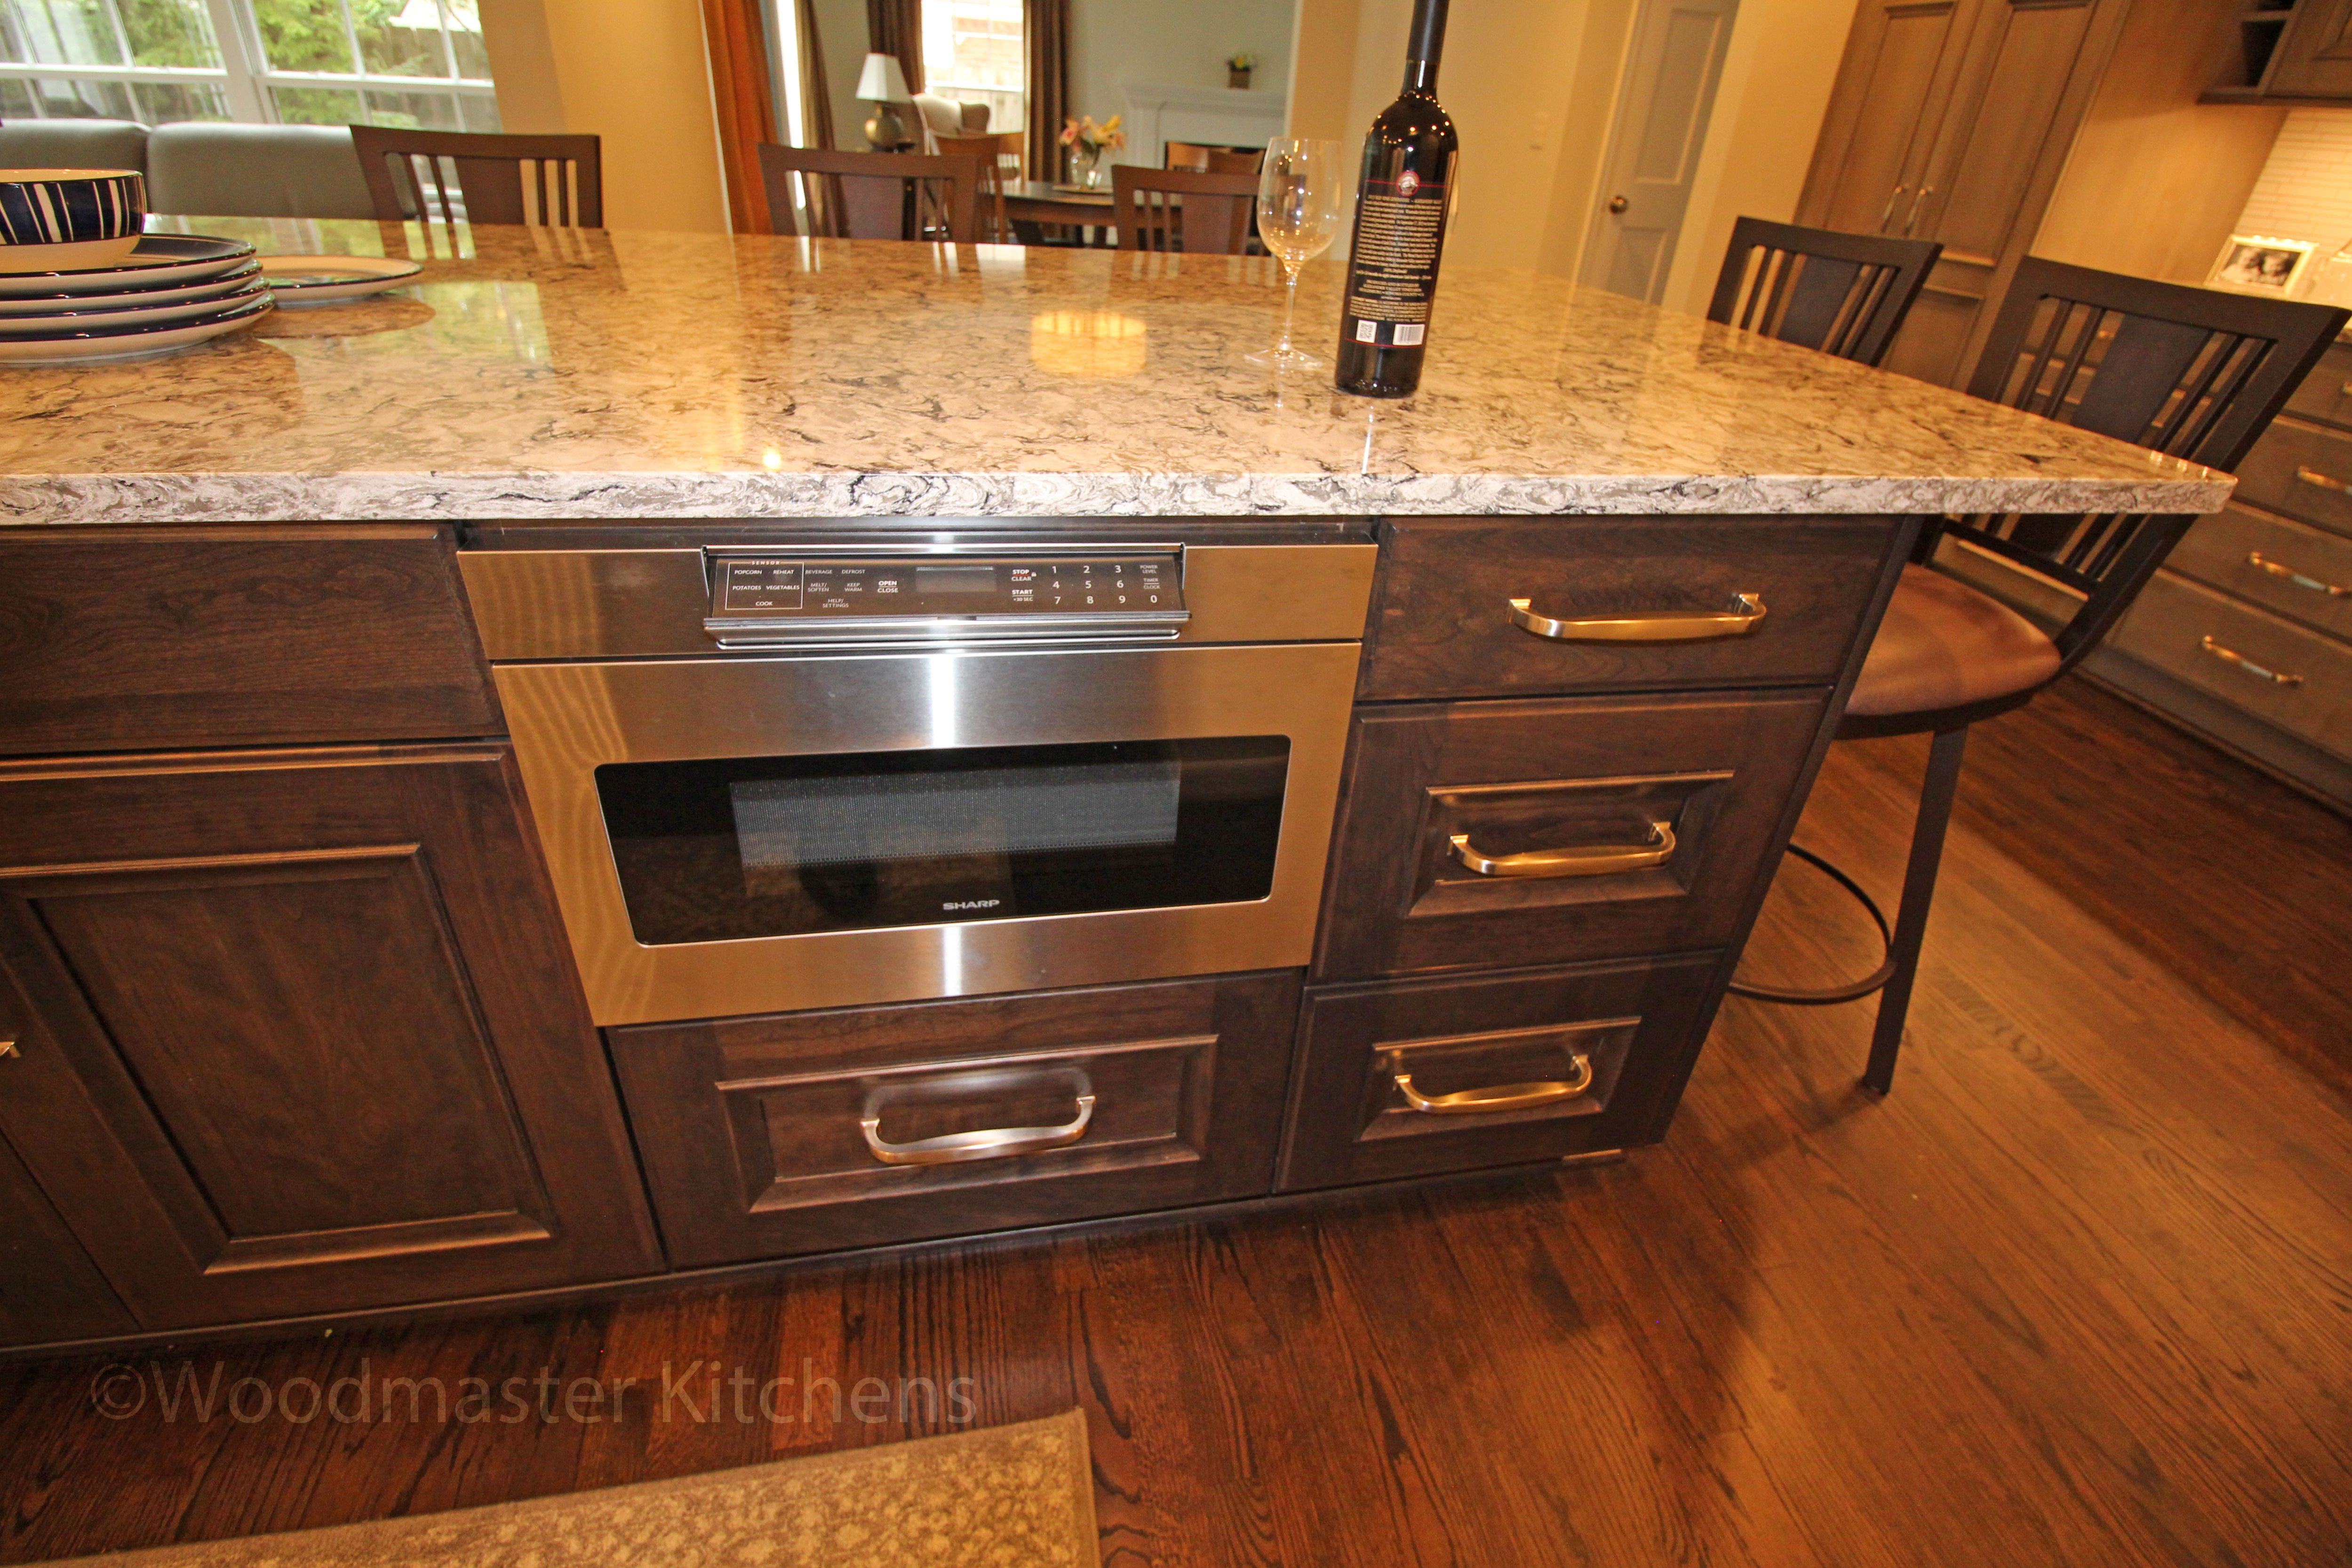 This traditional style kitchen design offers a warm inviting